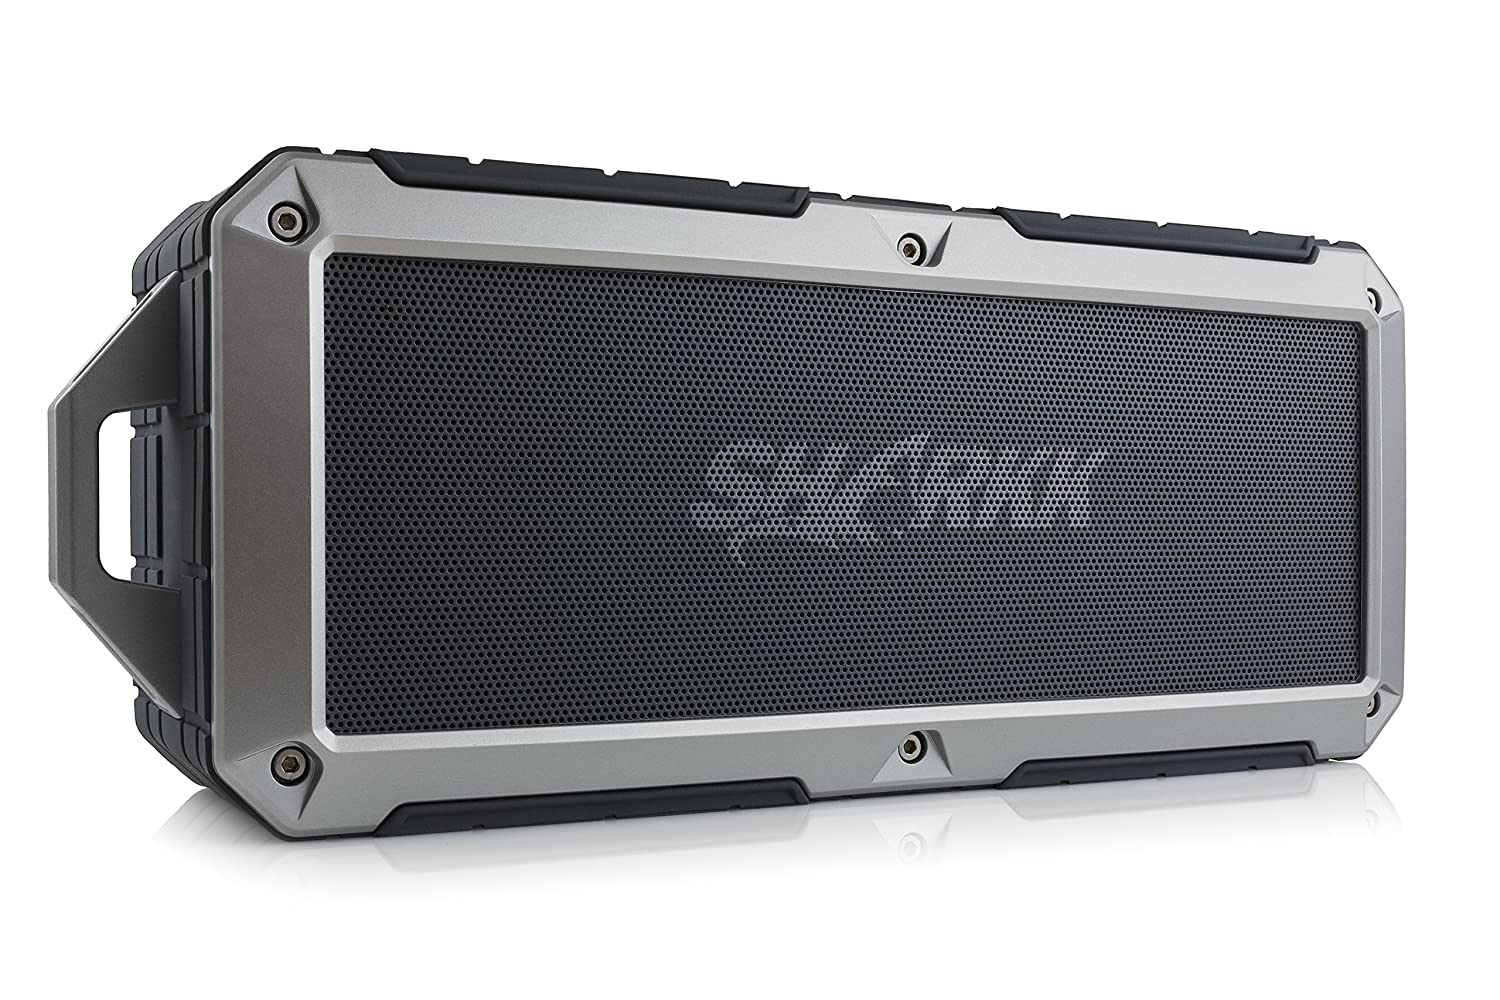 SHARKK 2O Outdoor Bluetooth Speakers